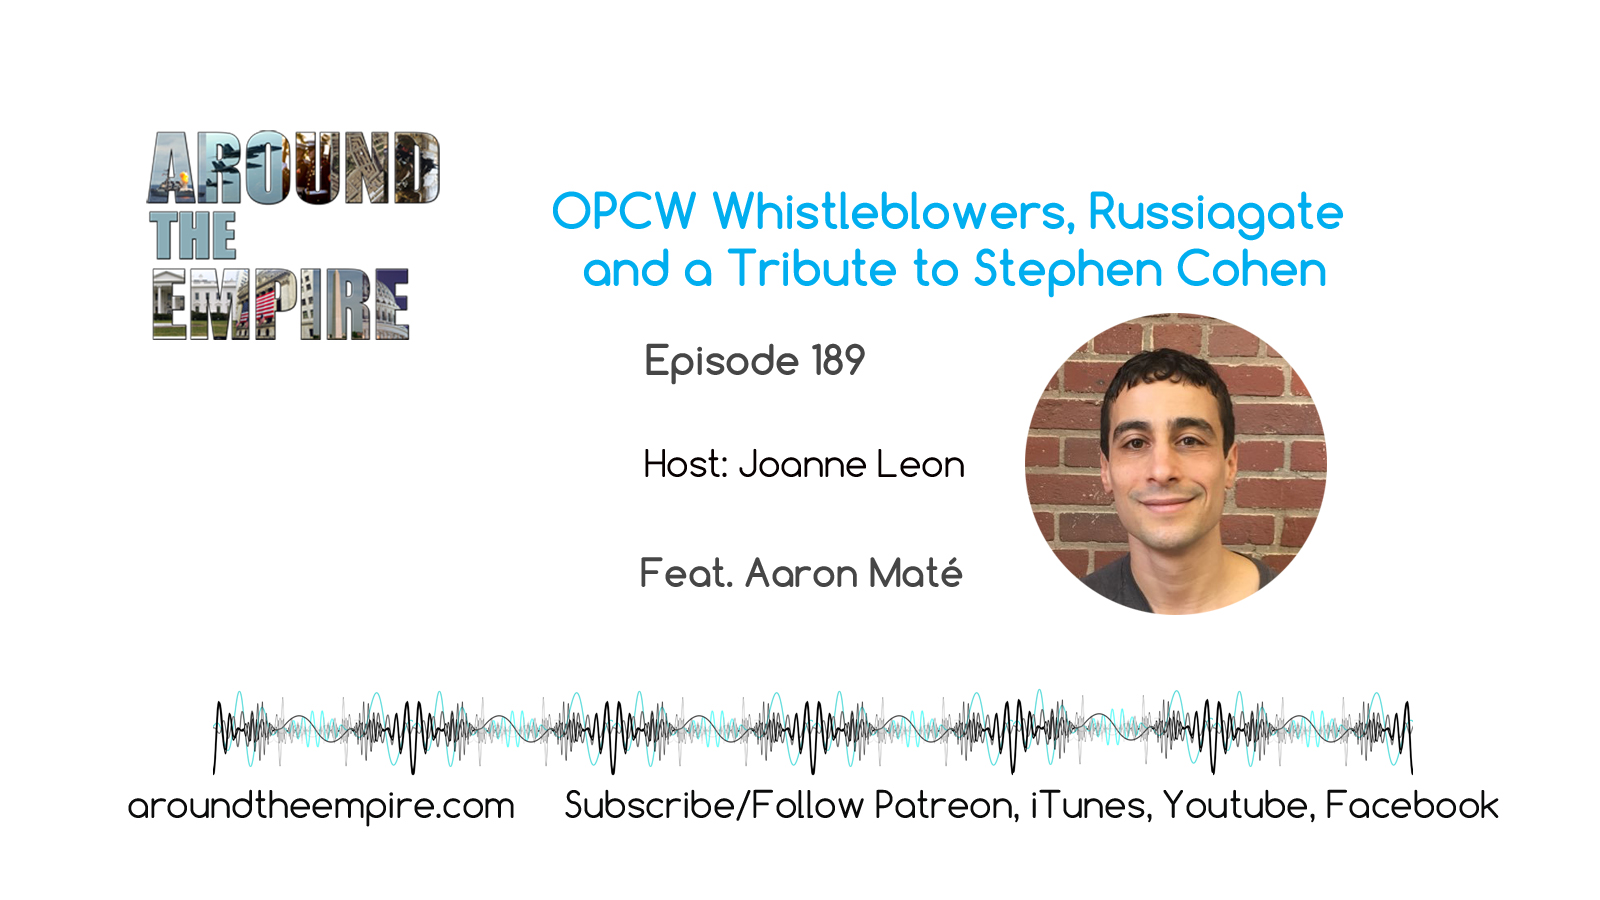 Ep 189 OPCW Whistleblowers, Russiagate and a Tribute to Stephen Cohen feat Aaron Maté